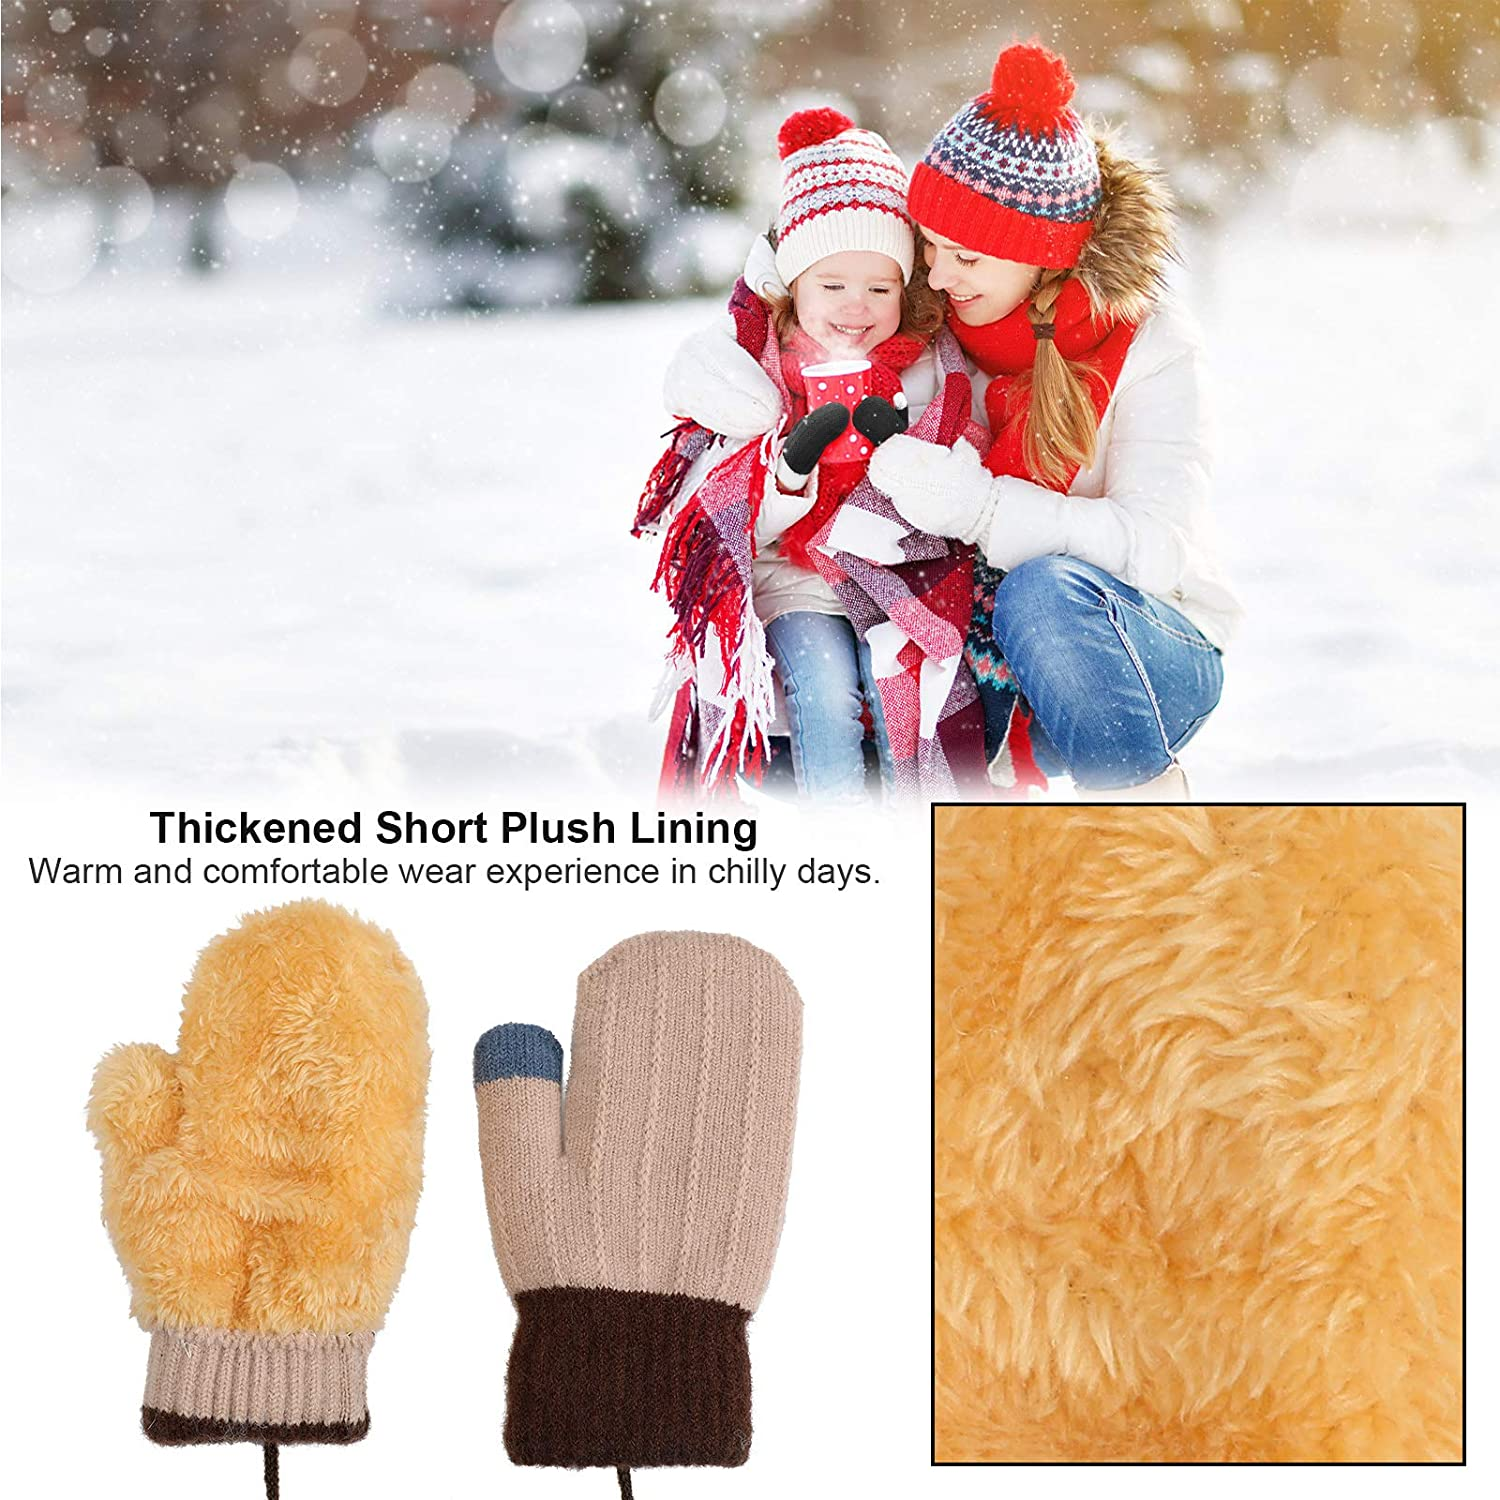 Full Finger Winter Warm Kids Gloves Lined Fleece Thermal Mittens for 1~3 Years Old Baby Girls Boys QKURT 3 Pairs Toddler Mittens